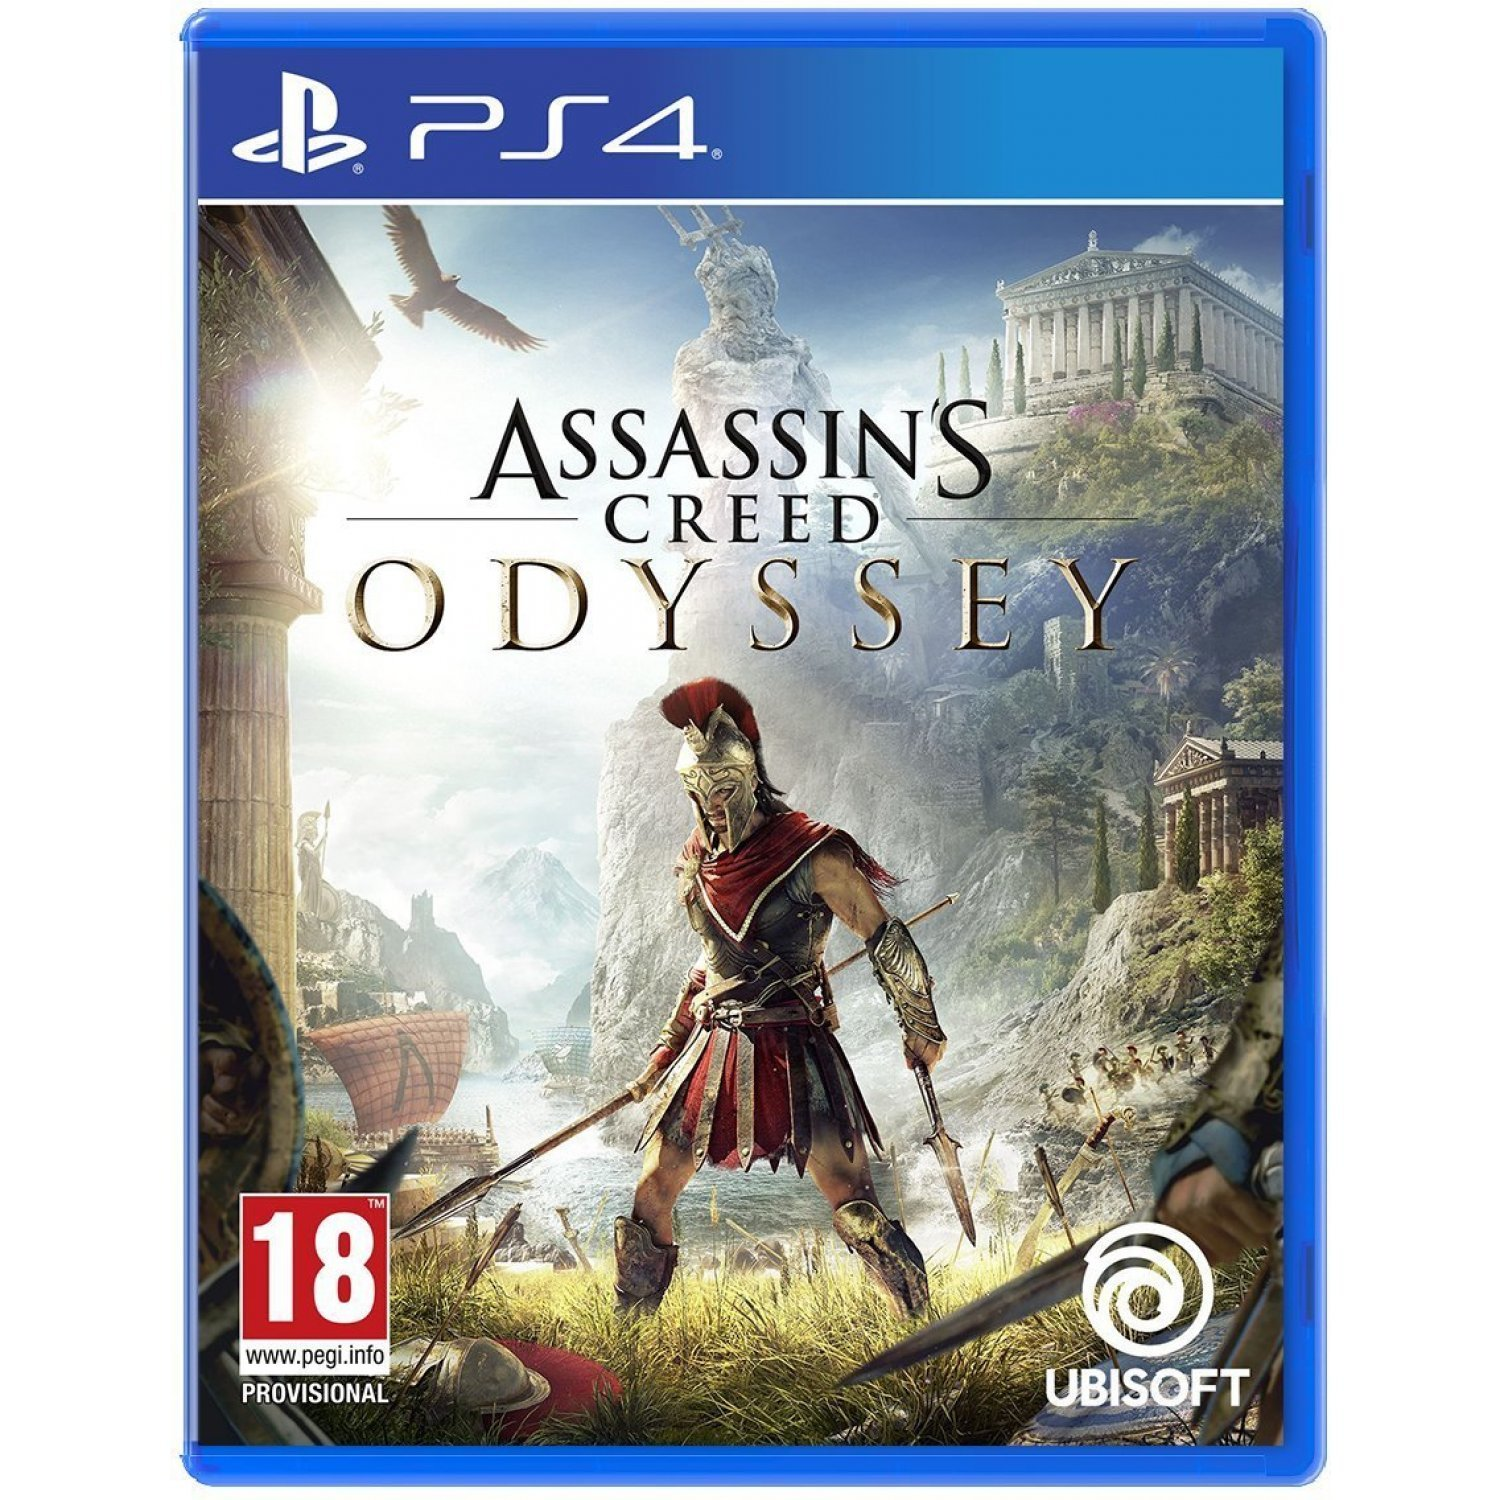 assassins-creed-odyssey-564553.9.jpg